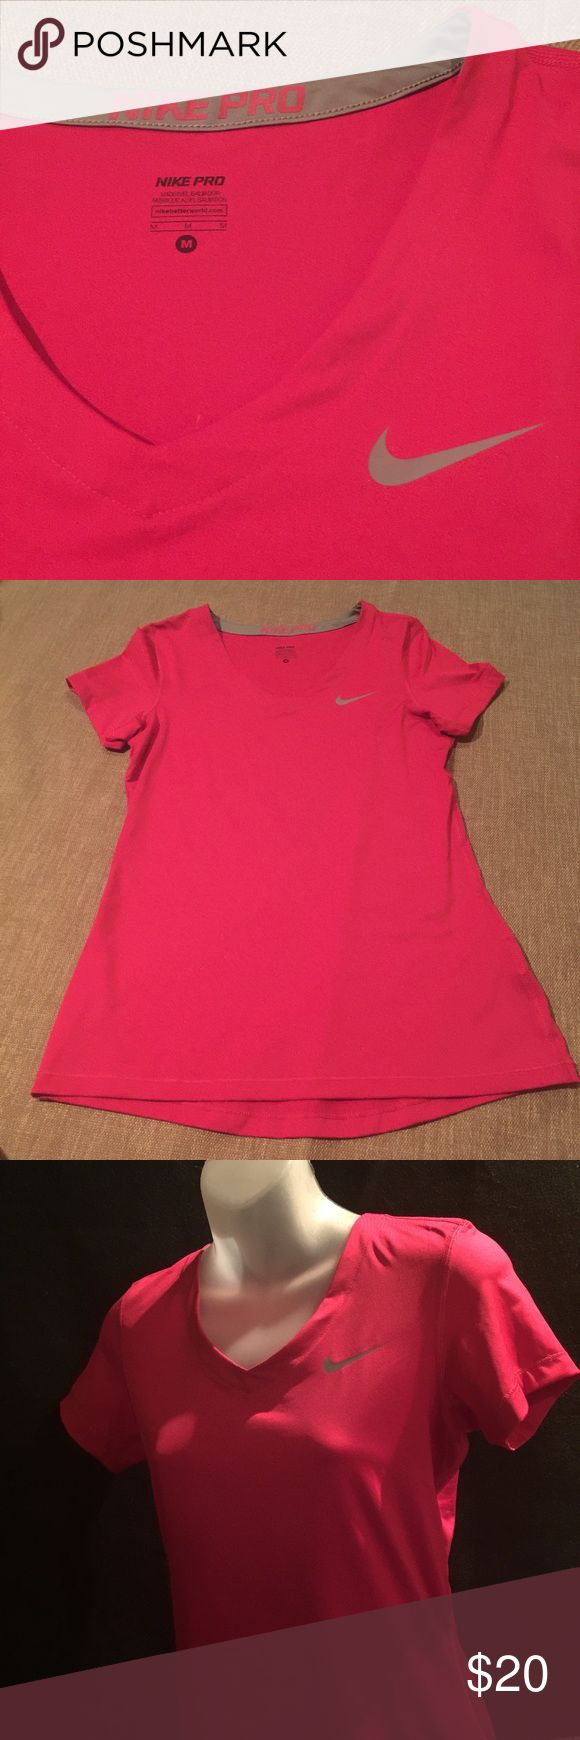 Nike Pro Dark Pink short sleeve Athletic top Sz: M Nike Pro Dark Pink short sleeve Athletic top Sz:M 84% polyester 16% spandex Great for the Gym! Nike Tops Tees - Short Sleeve